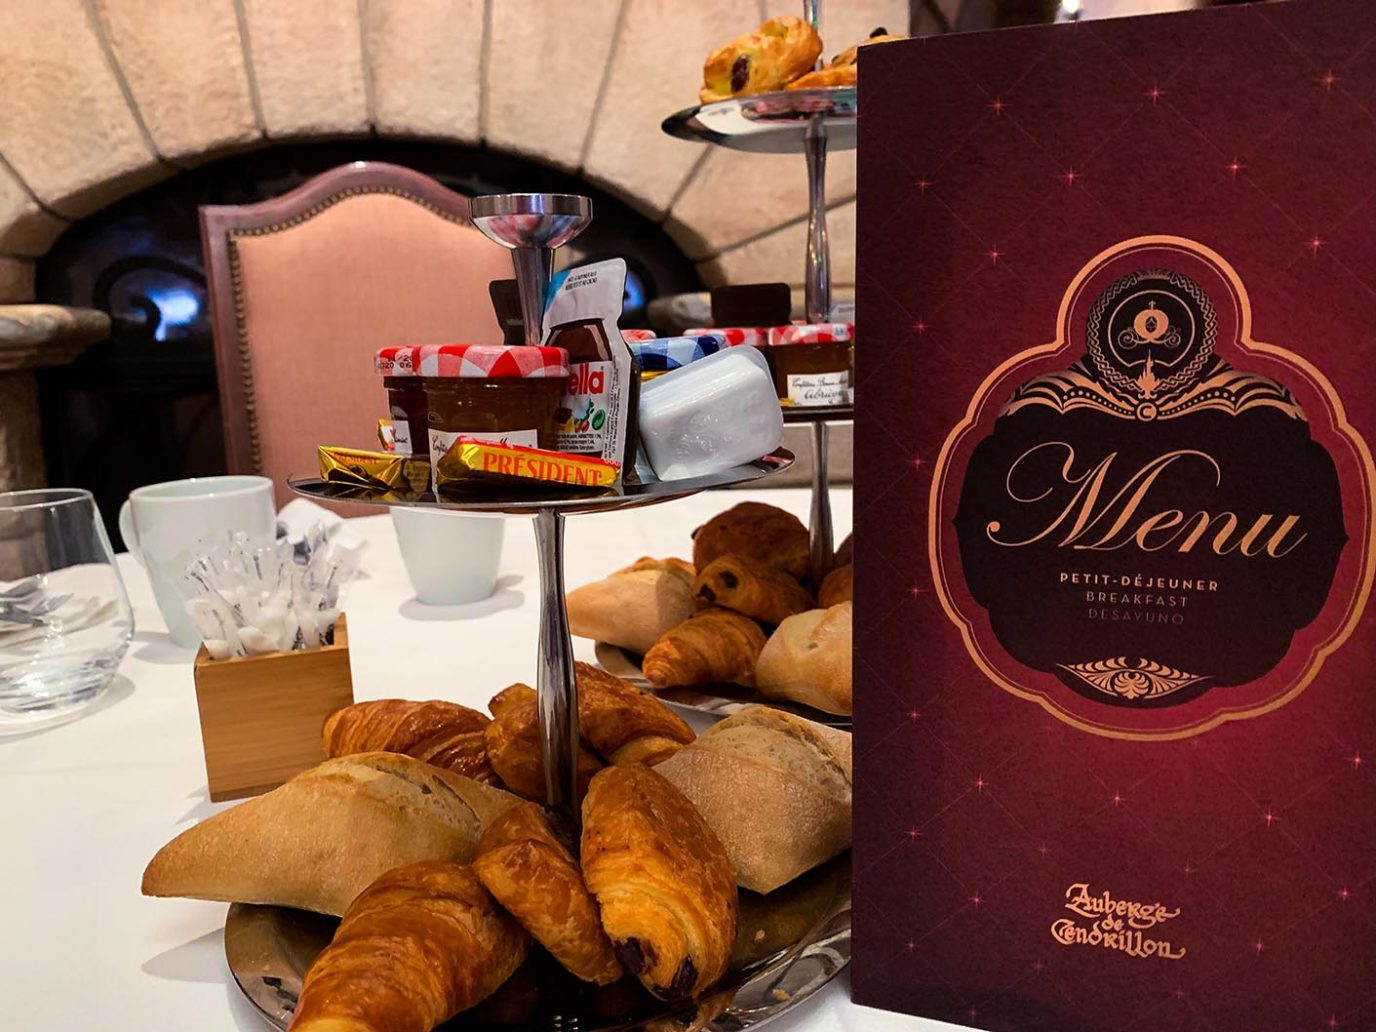 Review: Breakfast with the Disney Princesses